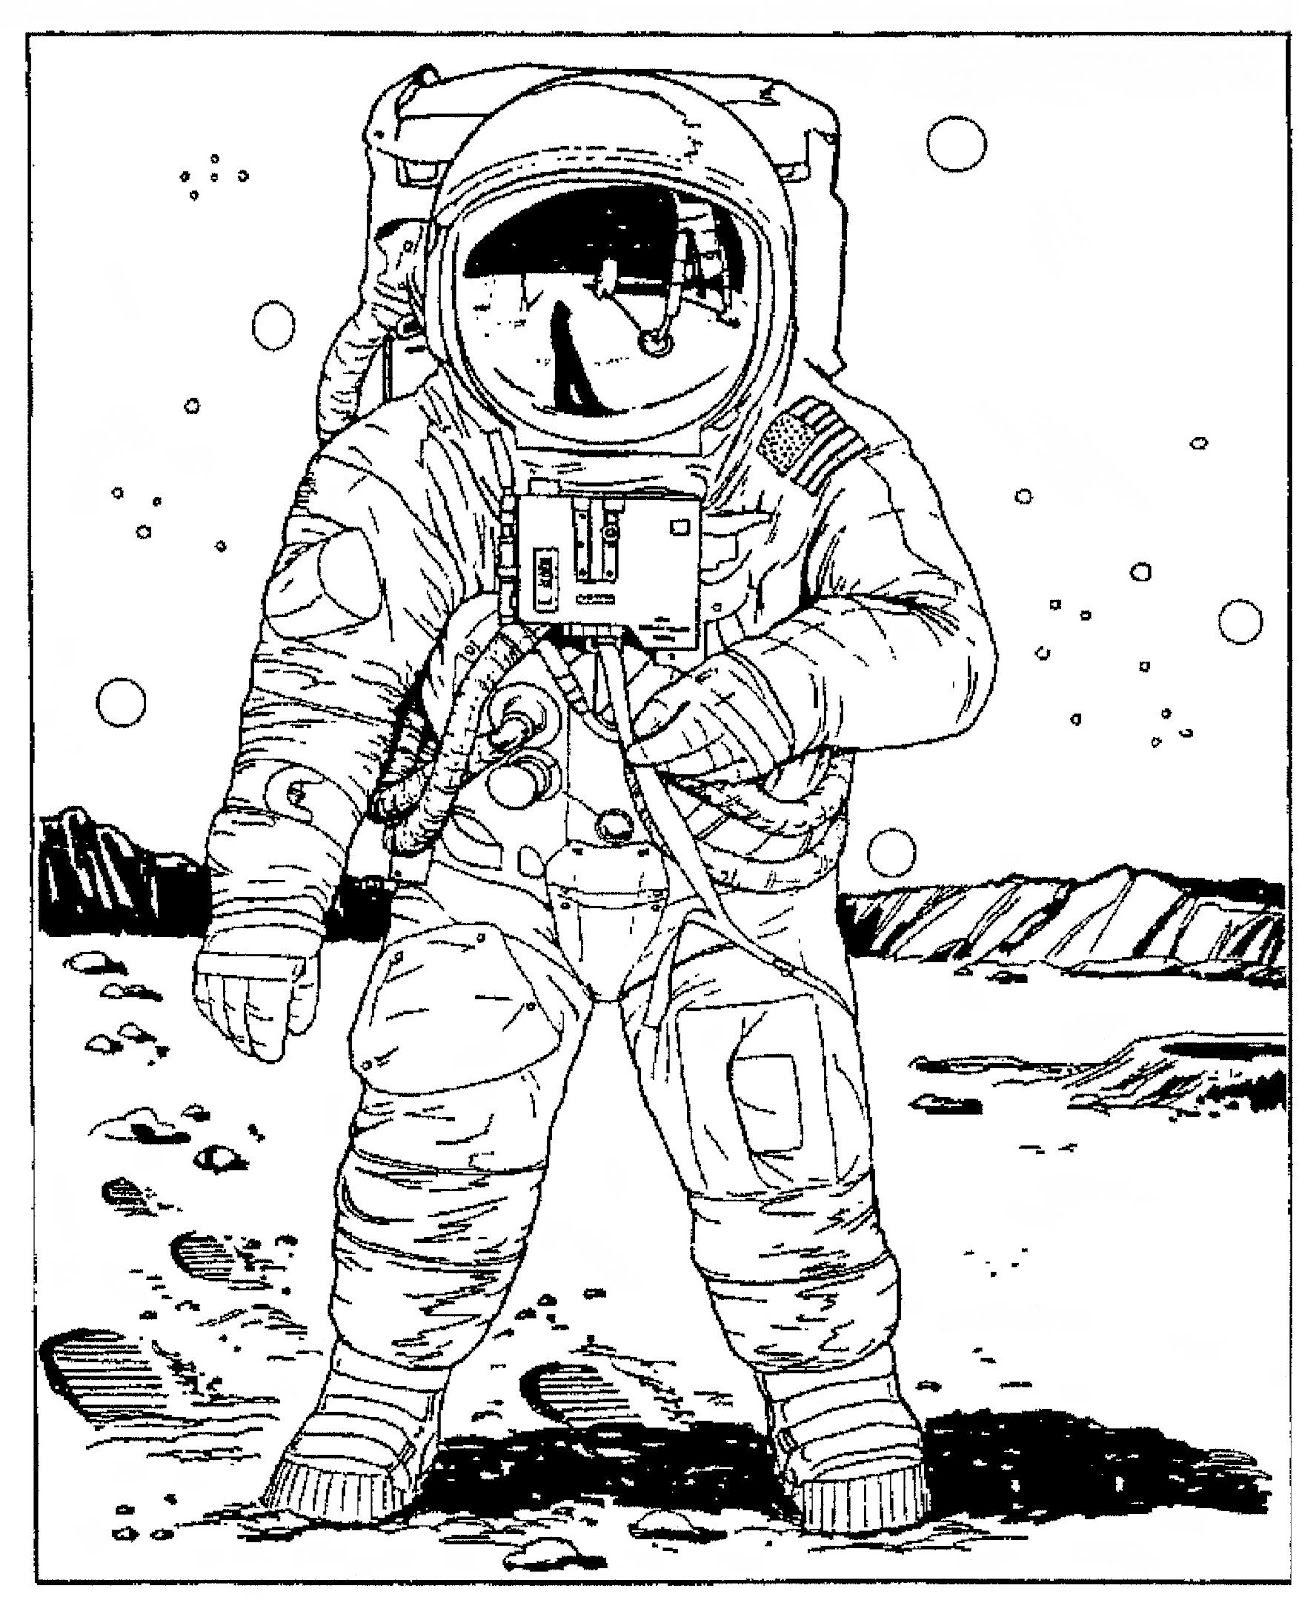 Timmy The Tooth Coloring Pages Astronaut Colouring Pages Page 2